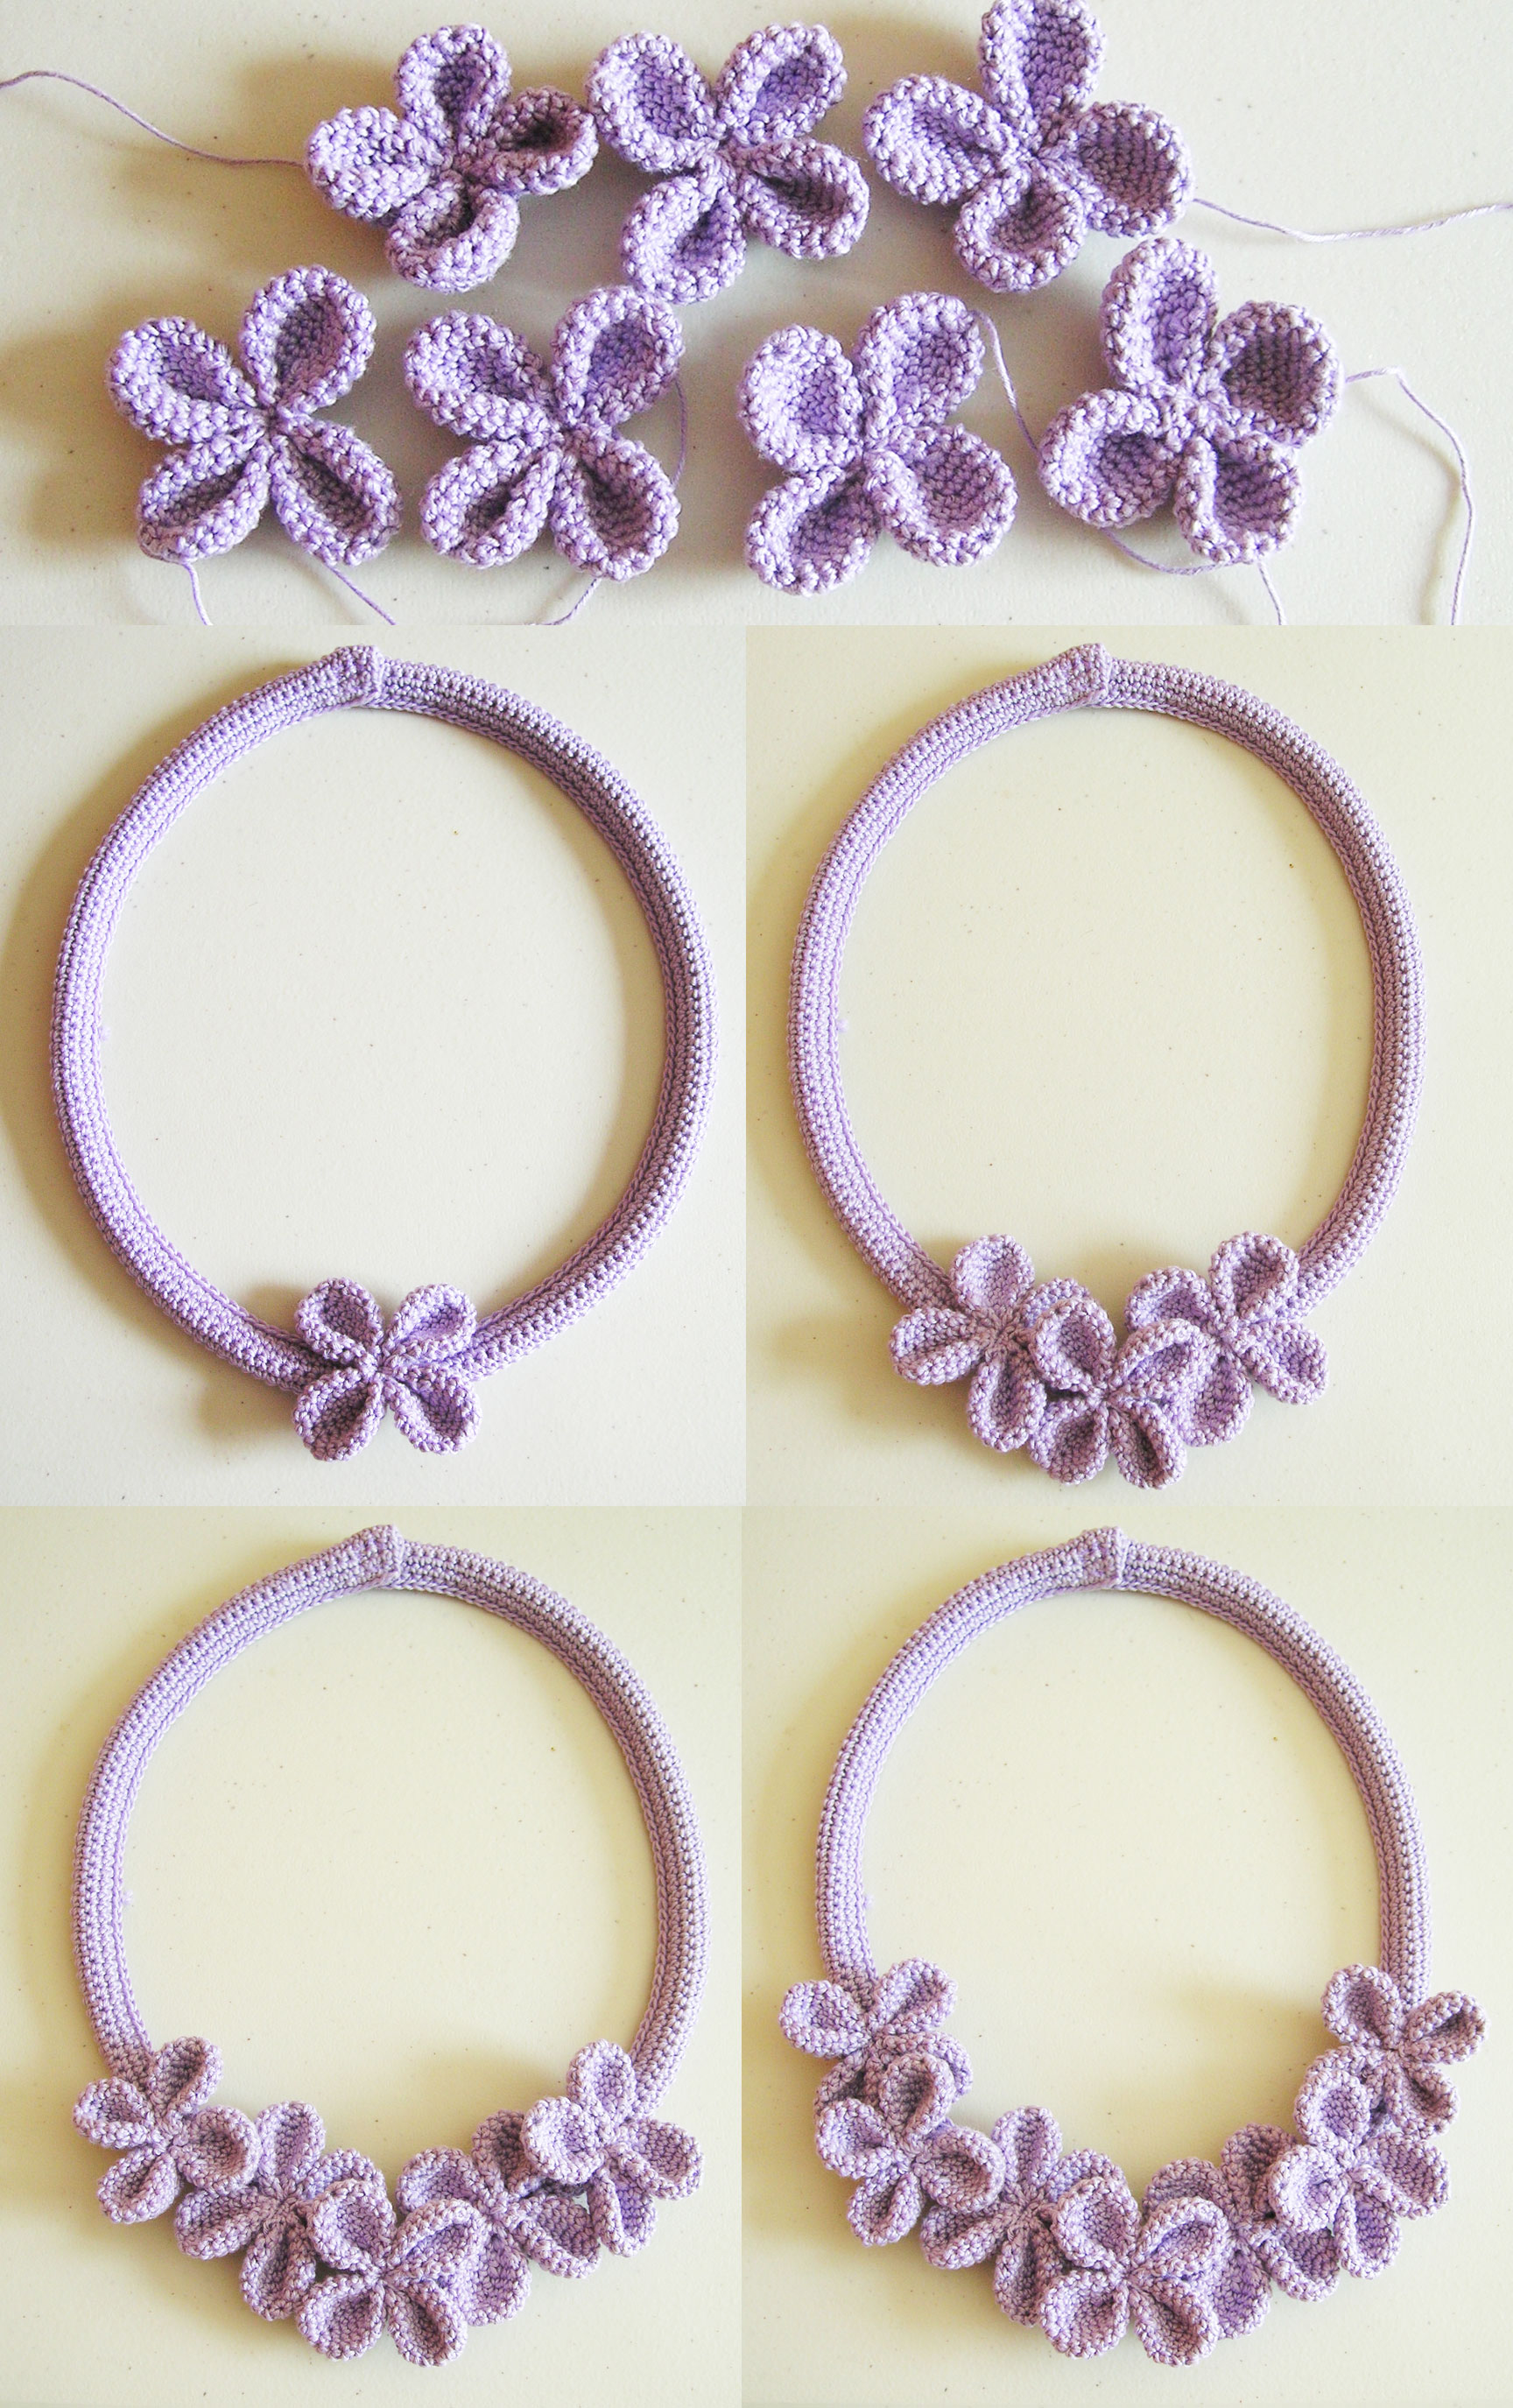 ... flower necklace #3/ Collar de flores a ganchillo #3 Chabepatterns